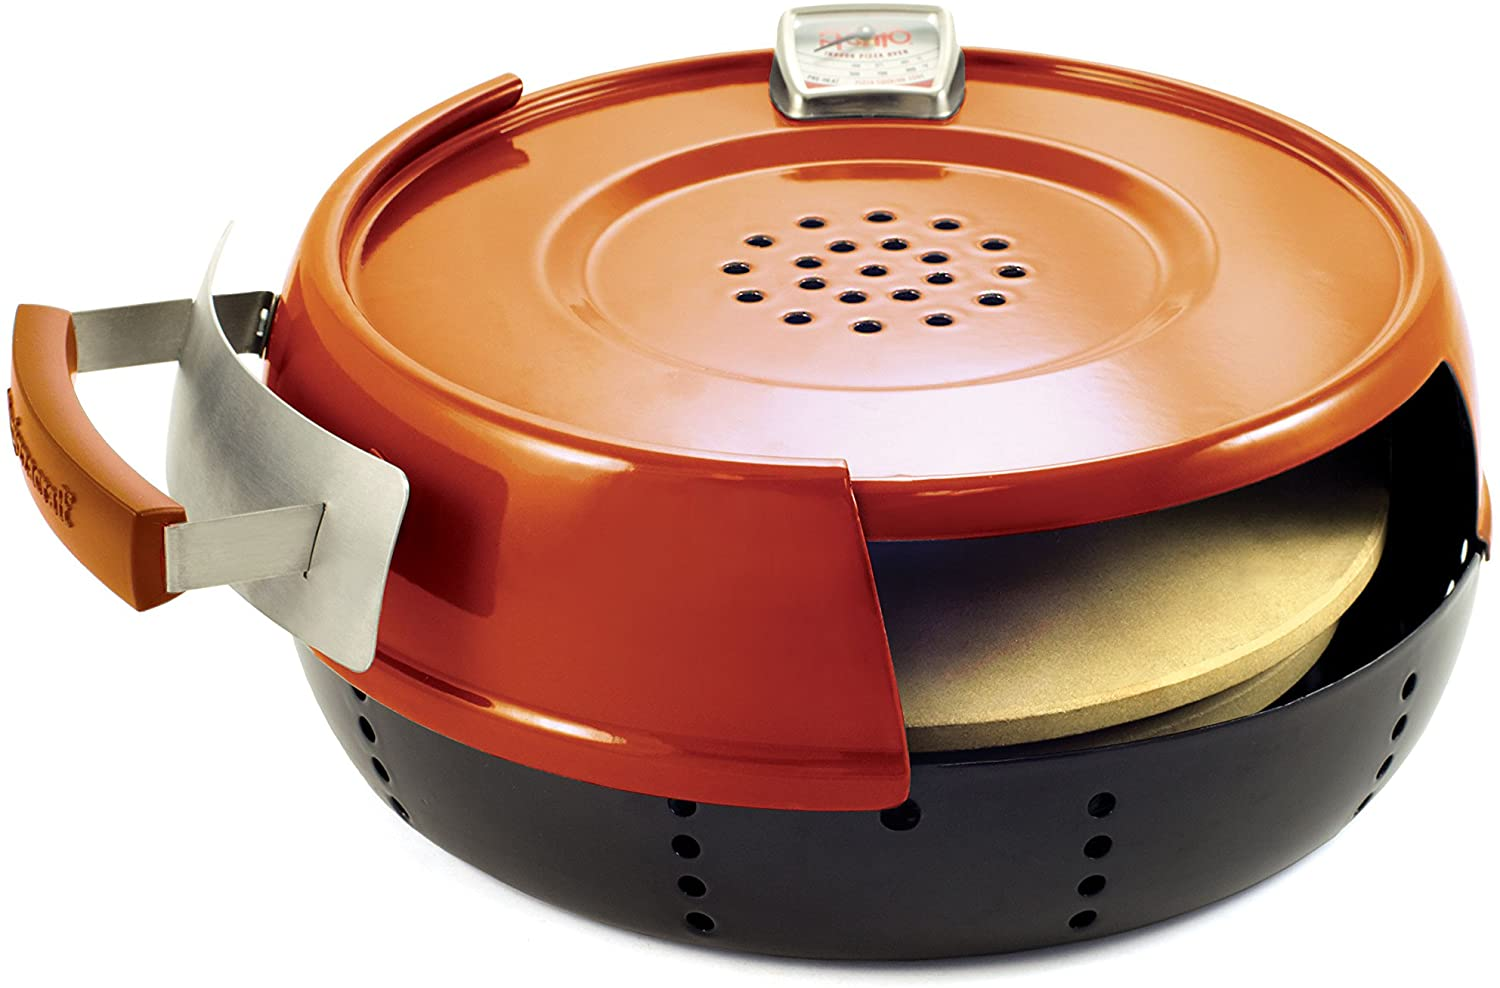 gadgets-for-him-pizza-oven